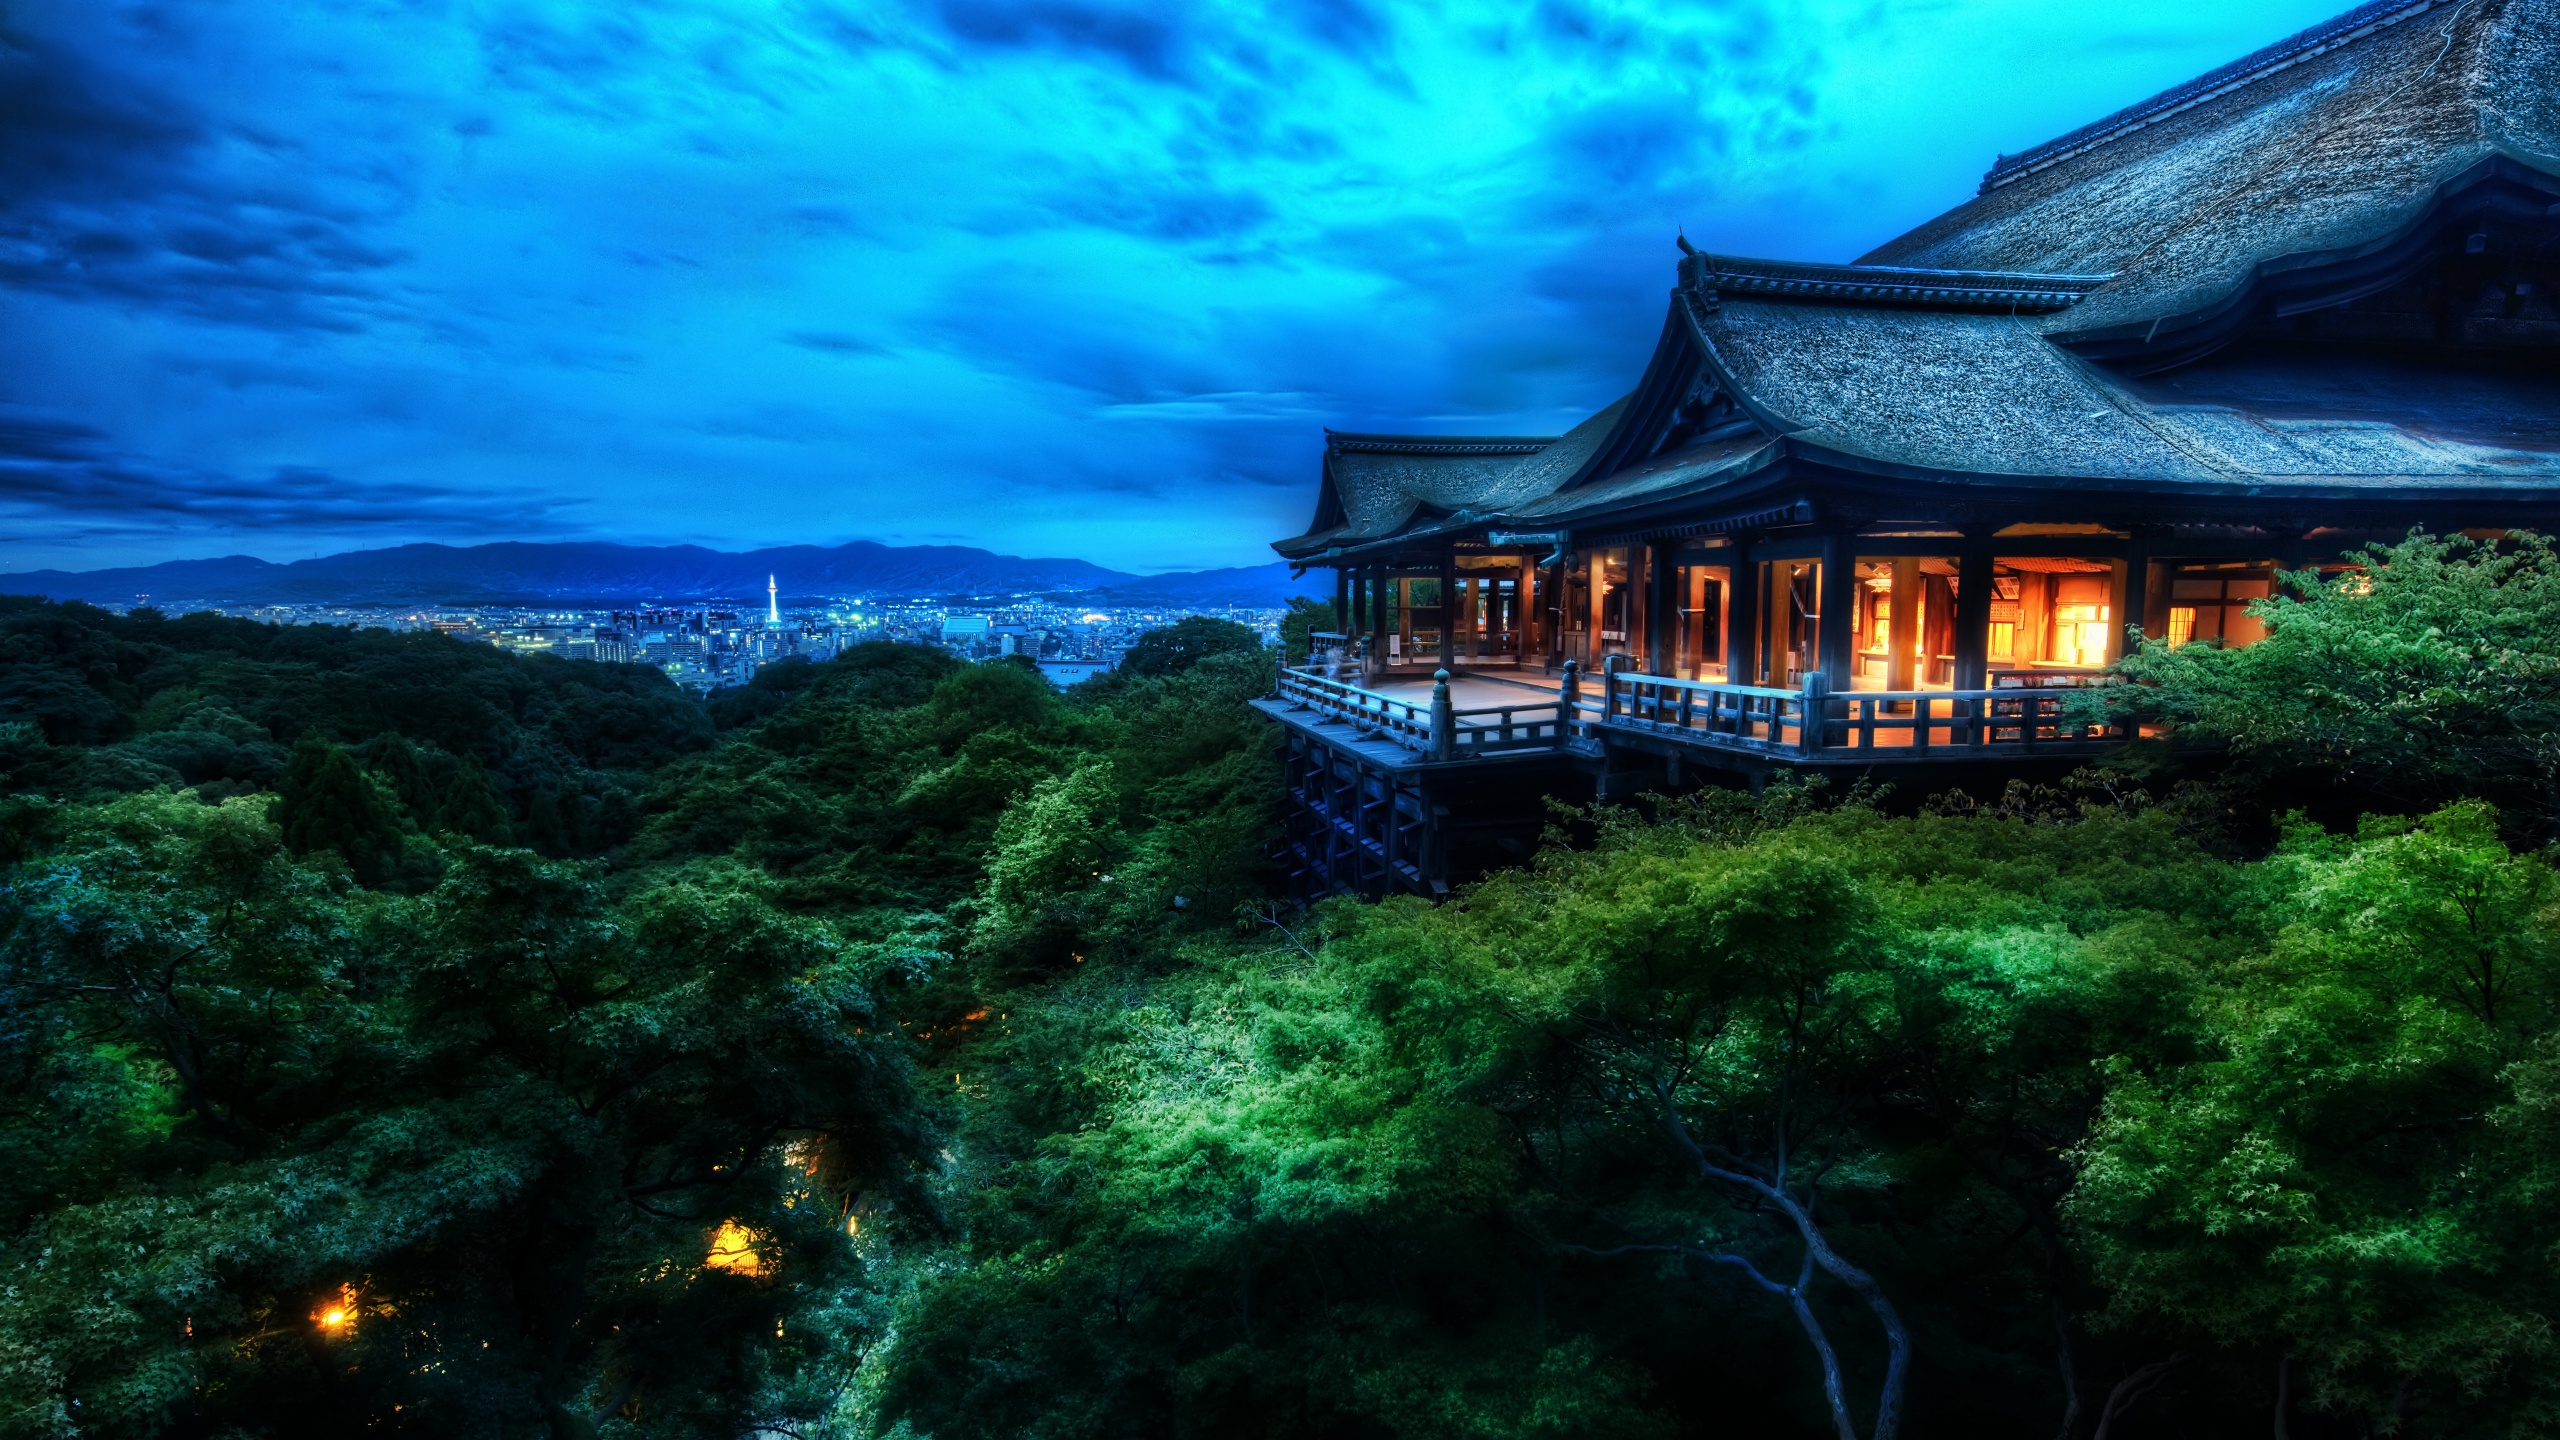 2560x1440 The Treetop Temple Protects Kyoto Japan Desktop Pc